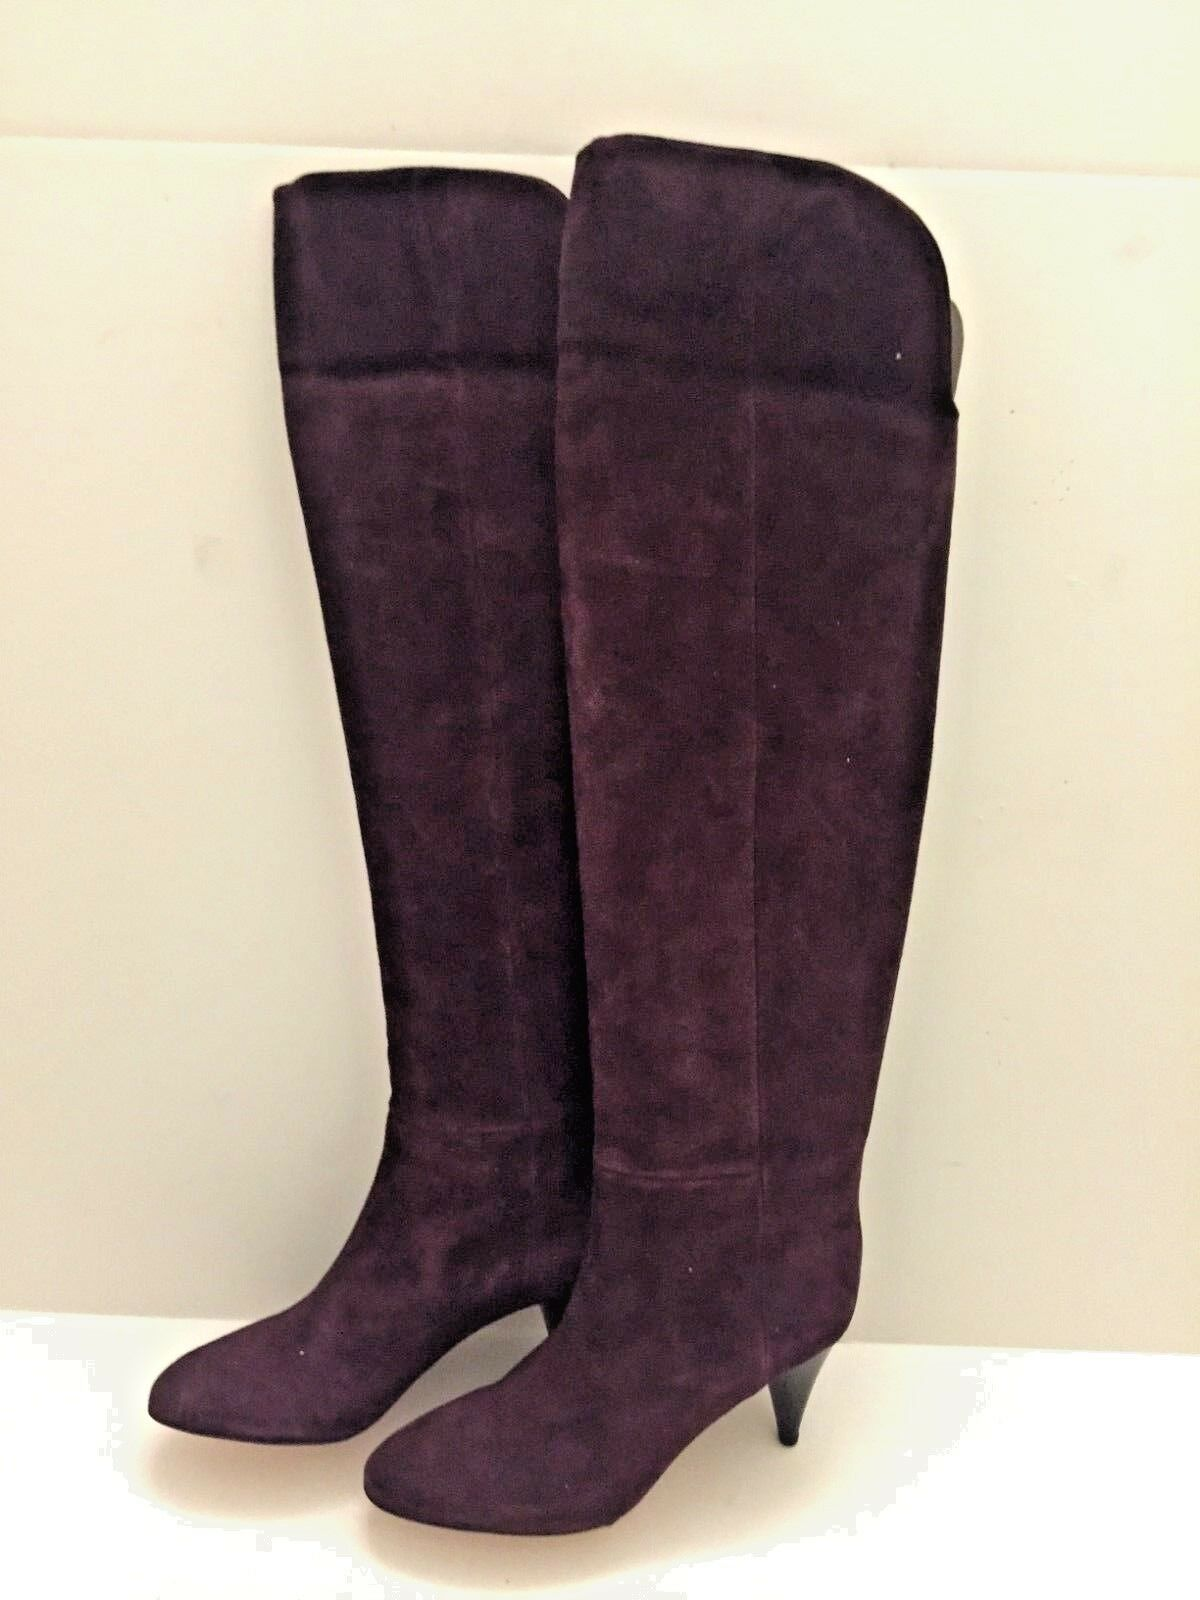 LOEFFLER RANDALL  Burgundy Over the Knee Suede Boots Size 8.5 NIB NEW  725